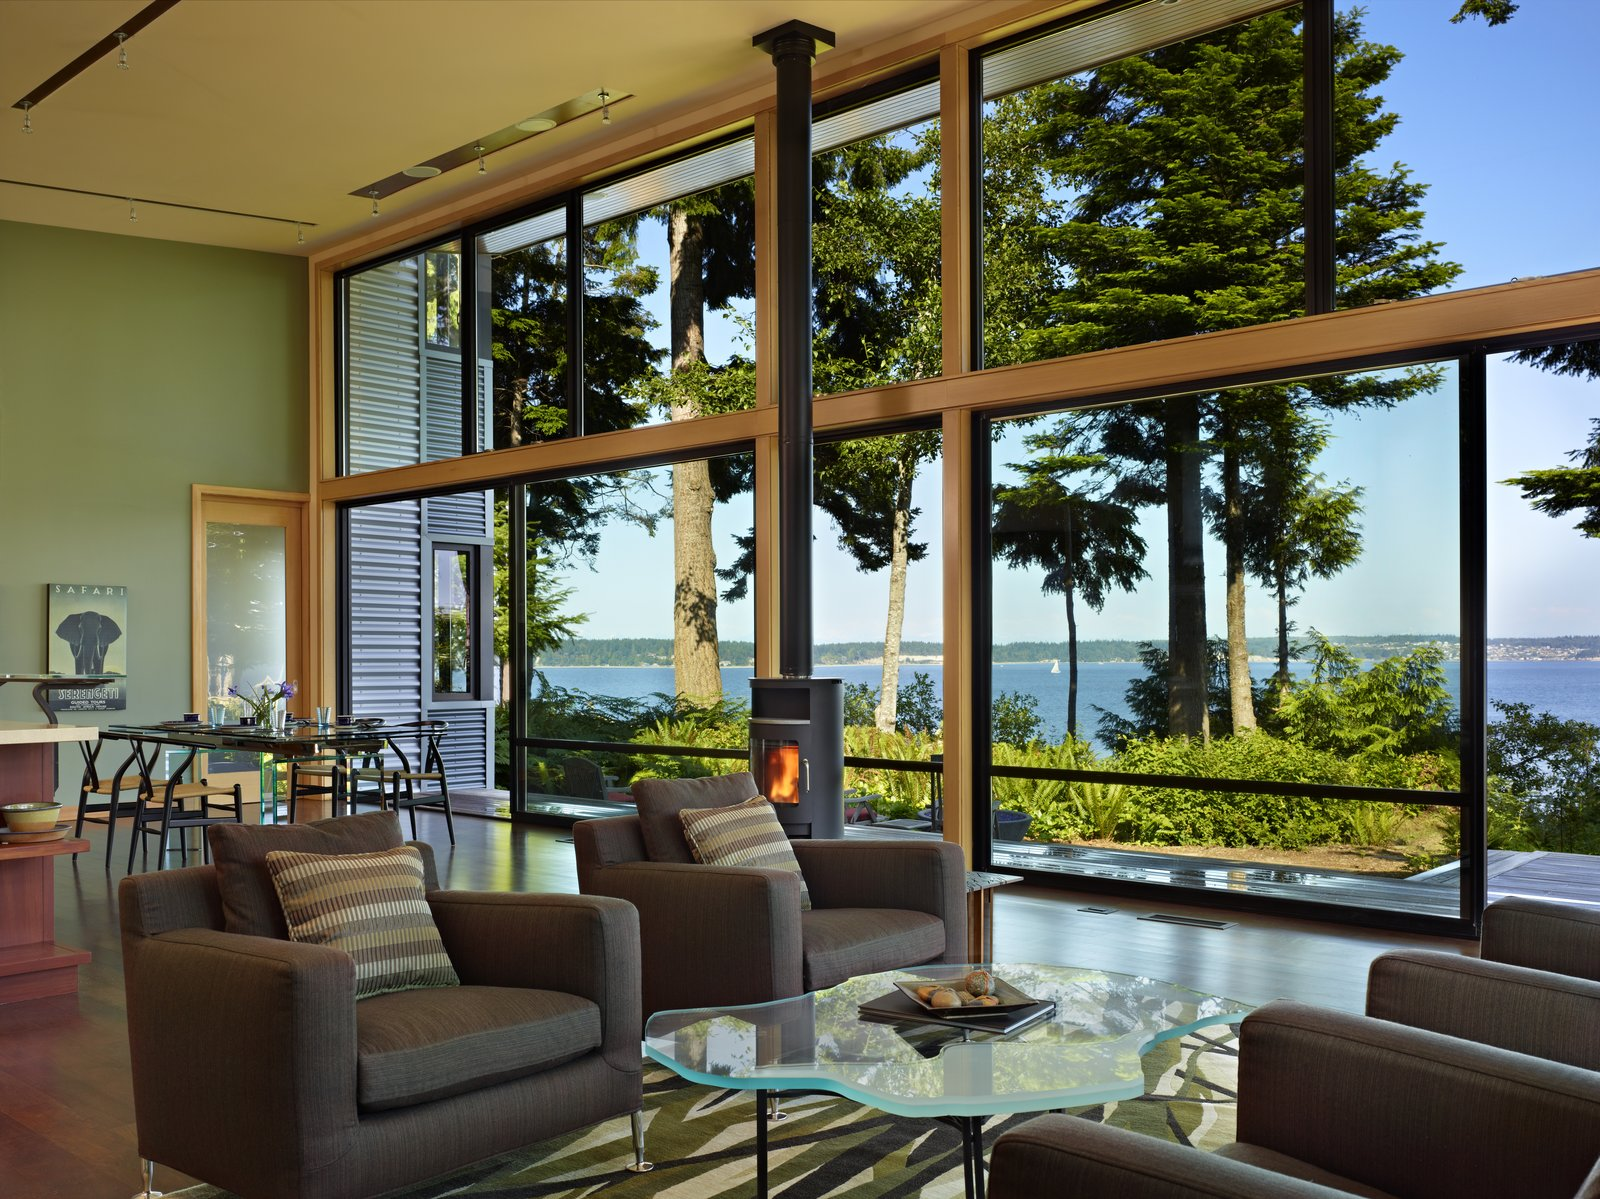 Living Room, Sofa, Dark Hardwood Floor, Wood Burning Fireplace, Chair, Coffee Tables, and Ceiling Lighting Main living space, which feels like an open porch due to the large sliding glass panels  Port Ludlow House by FINNE Architects